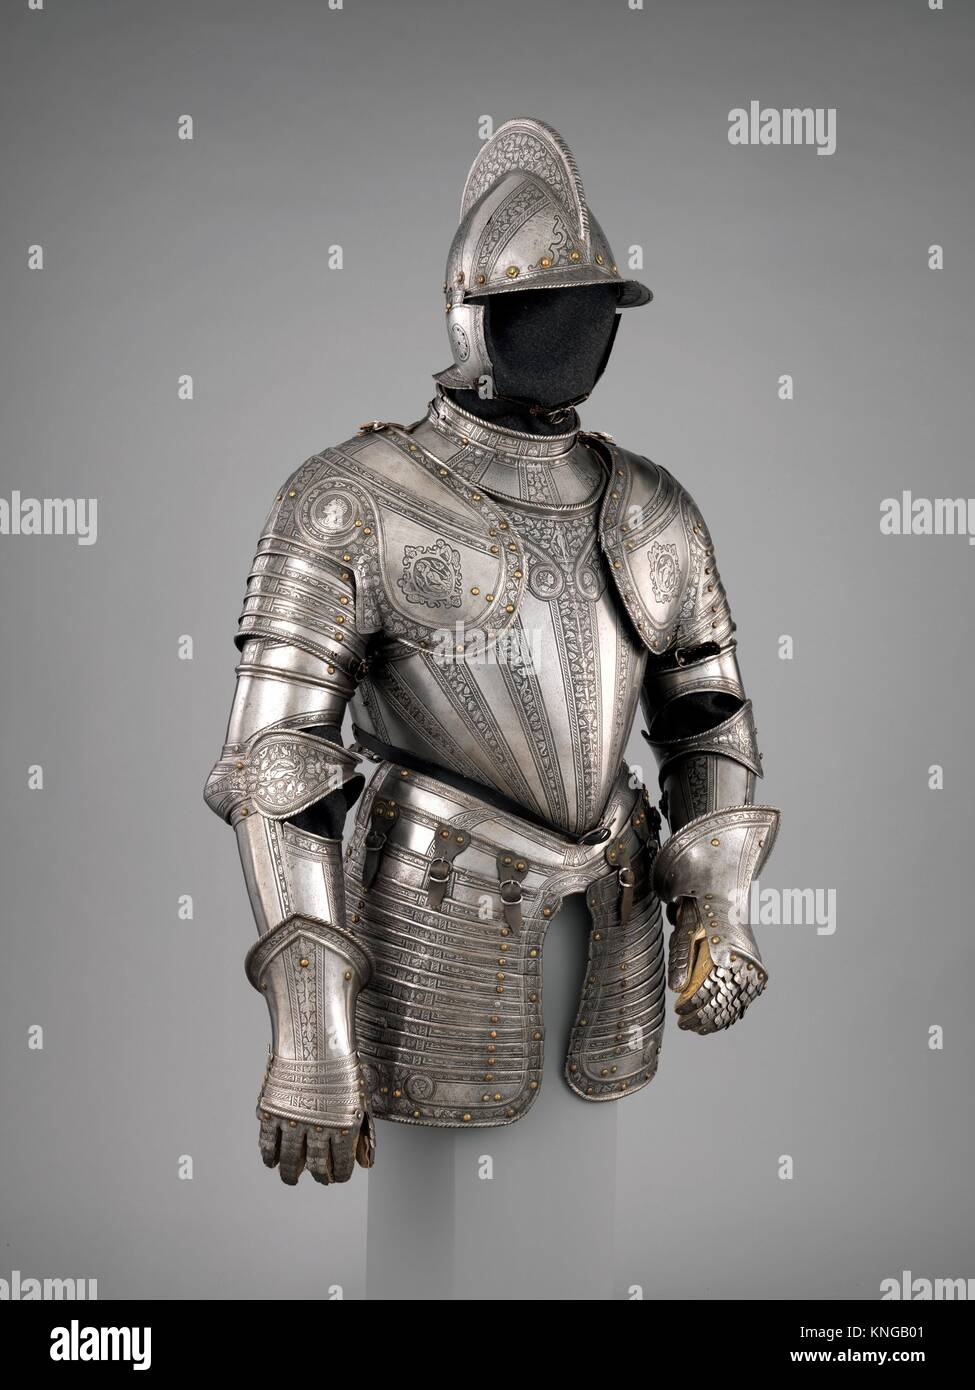 Infantry Armor. Armorer: Upper plate of the gorget, skirt lames, and cheek pieces made by Daniel Tachaux (French, - Stock Image